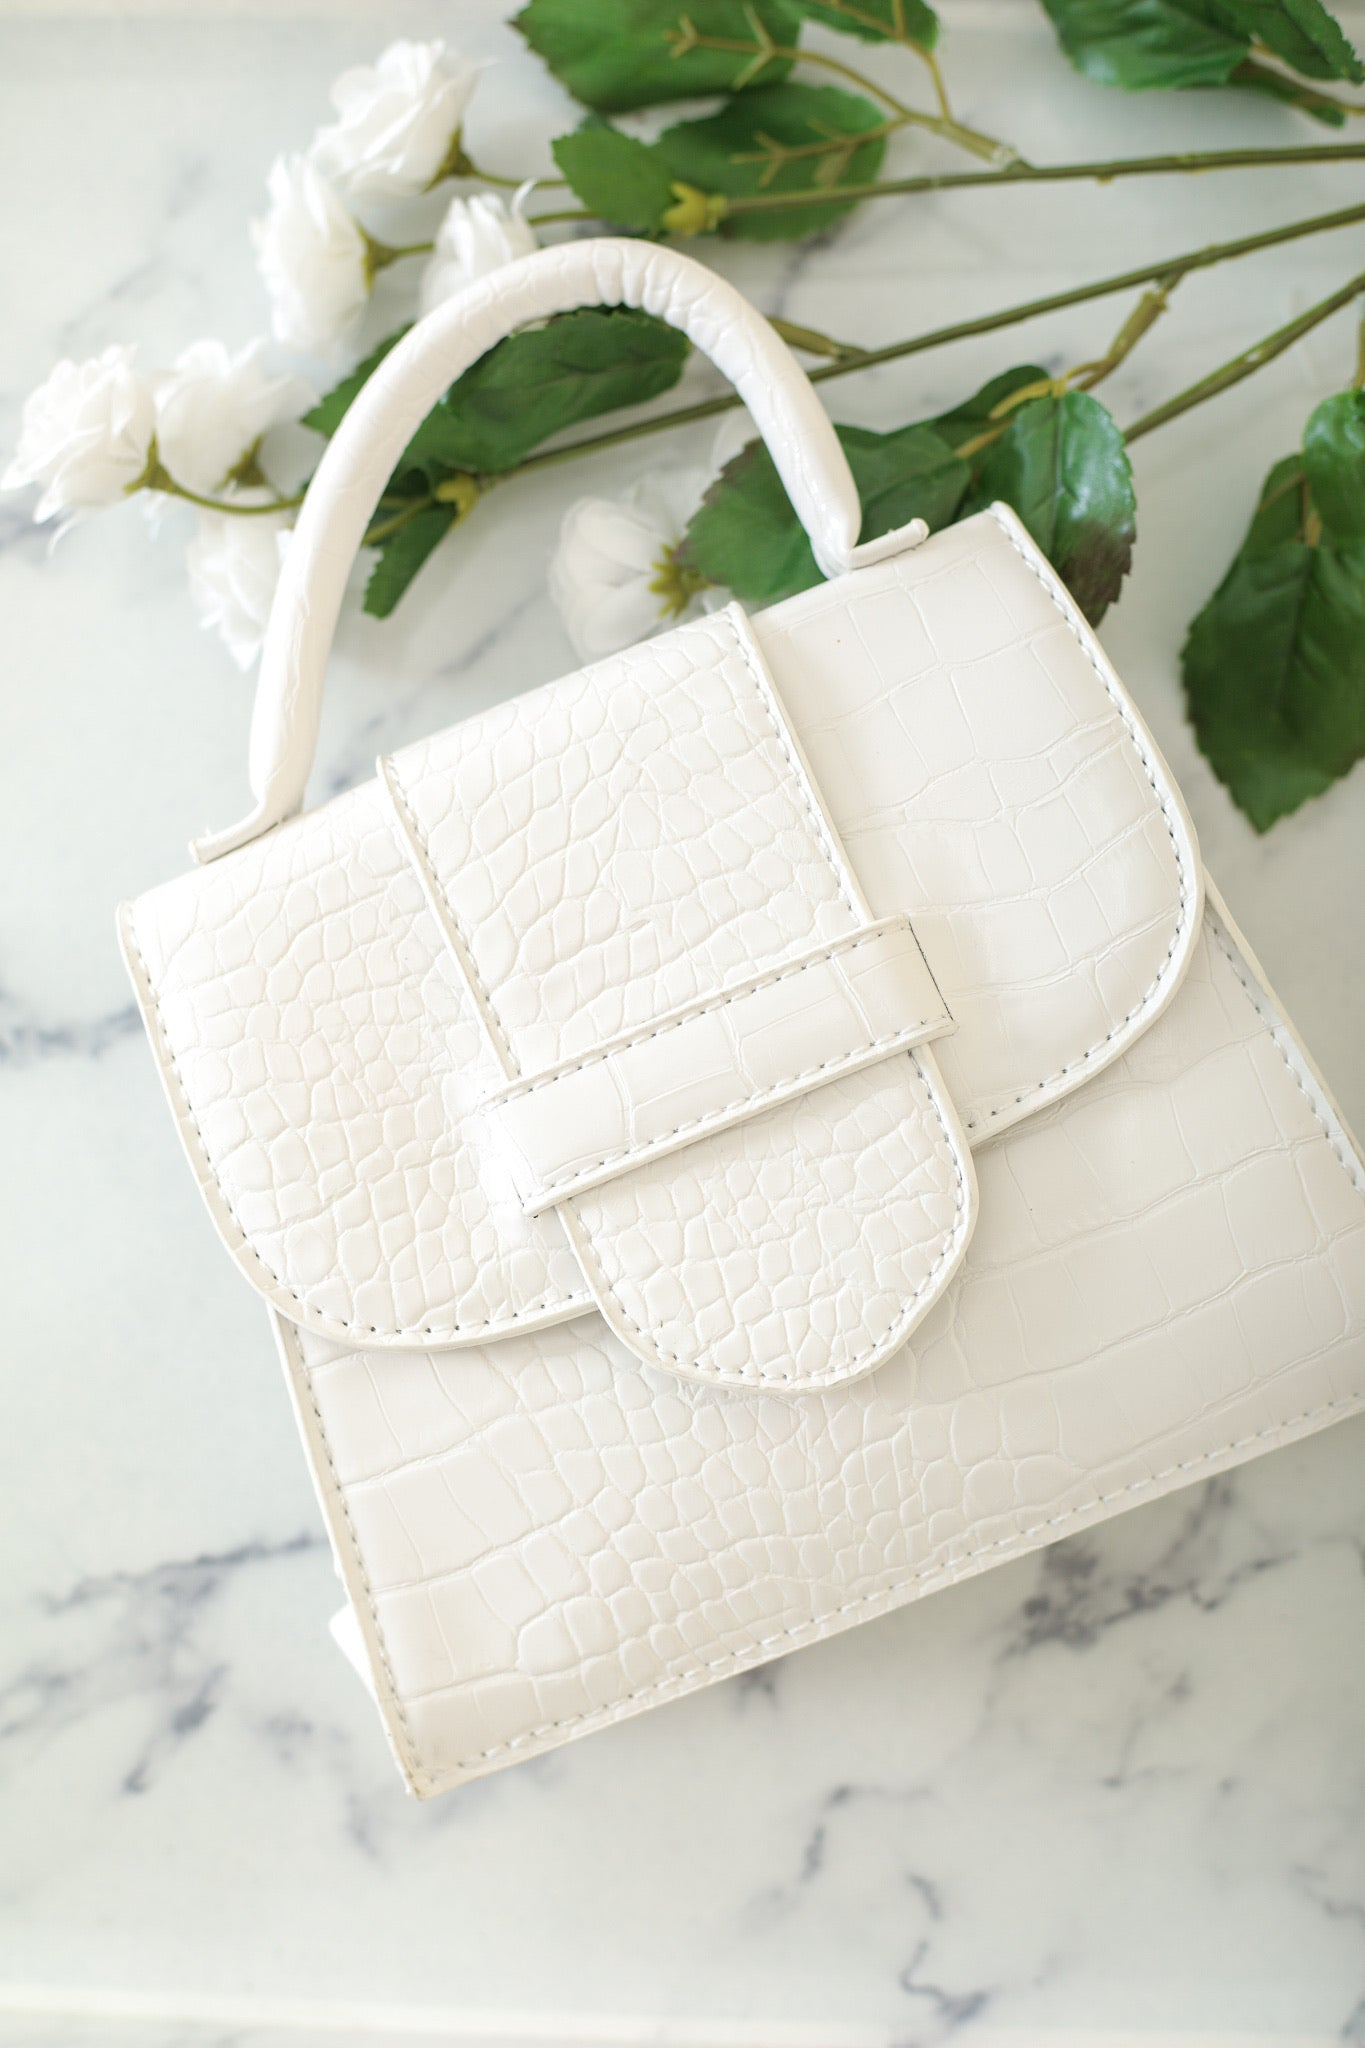 Everything I Need Small Snakeskin Waist Purse - White - Handbag - Wight Elephant Boutique